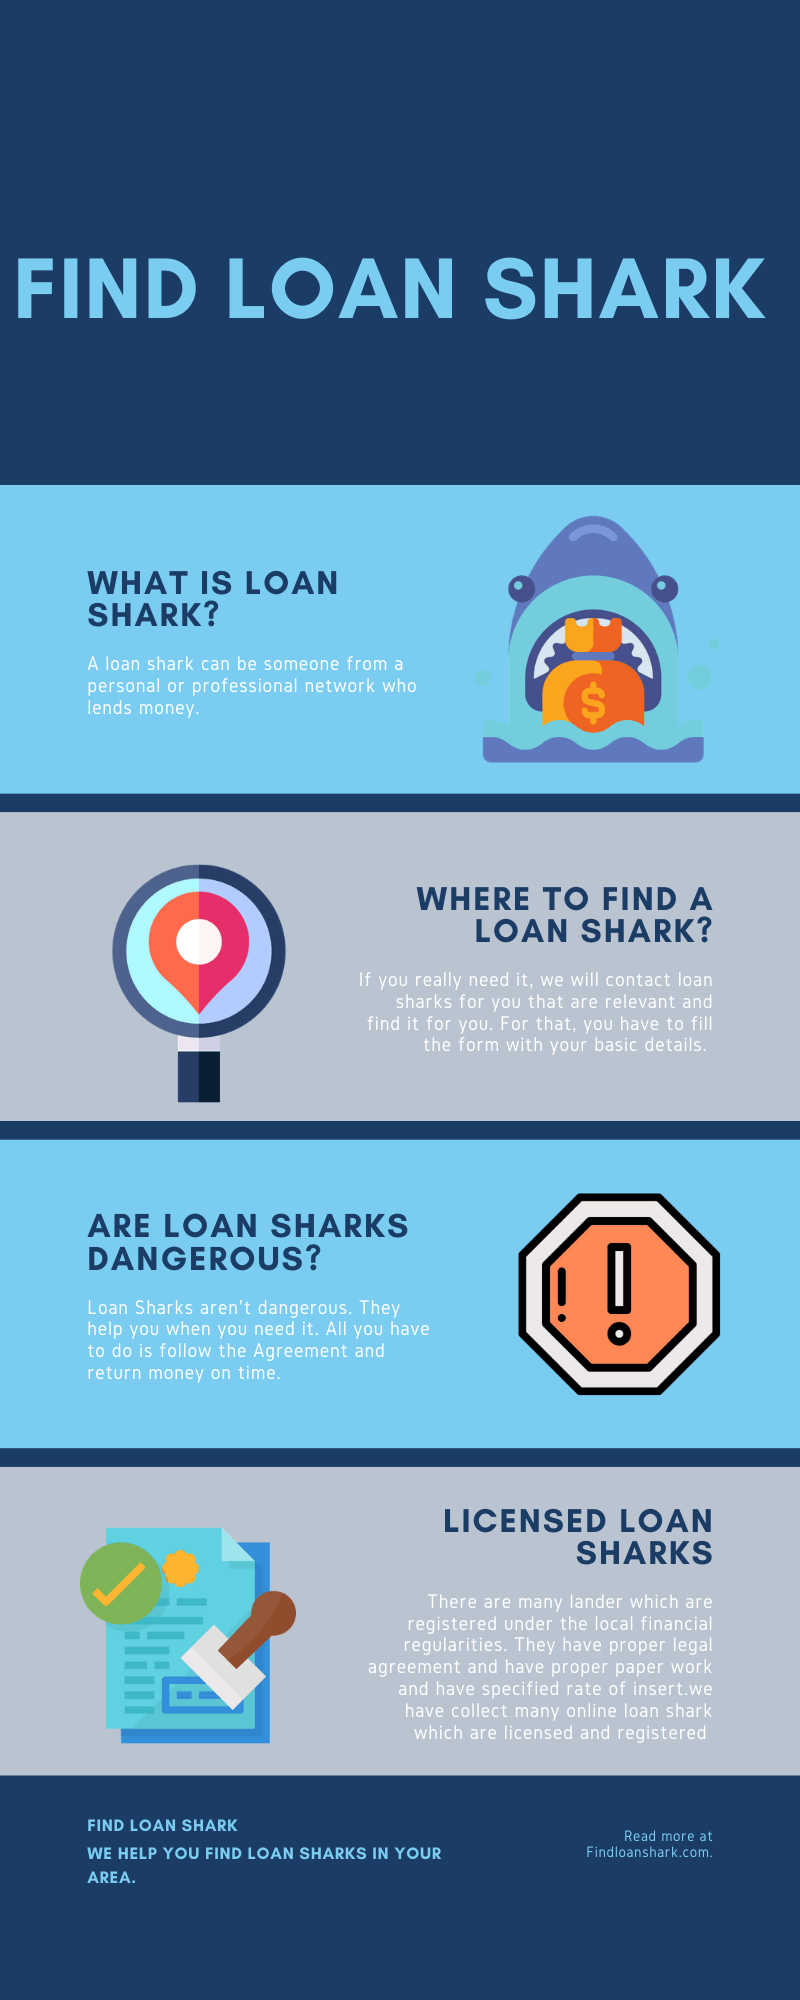 All about loan sharks